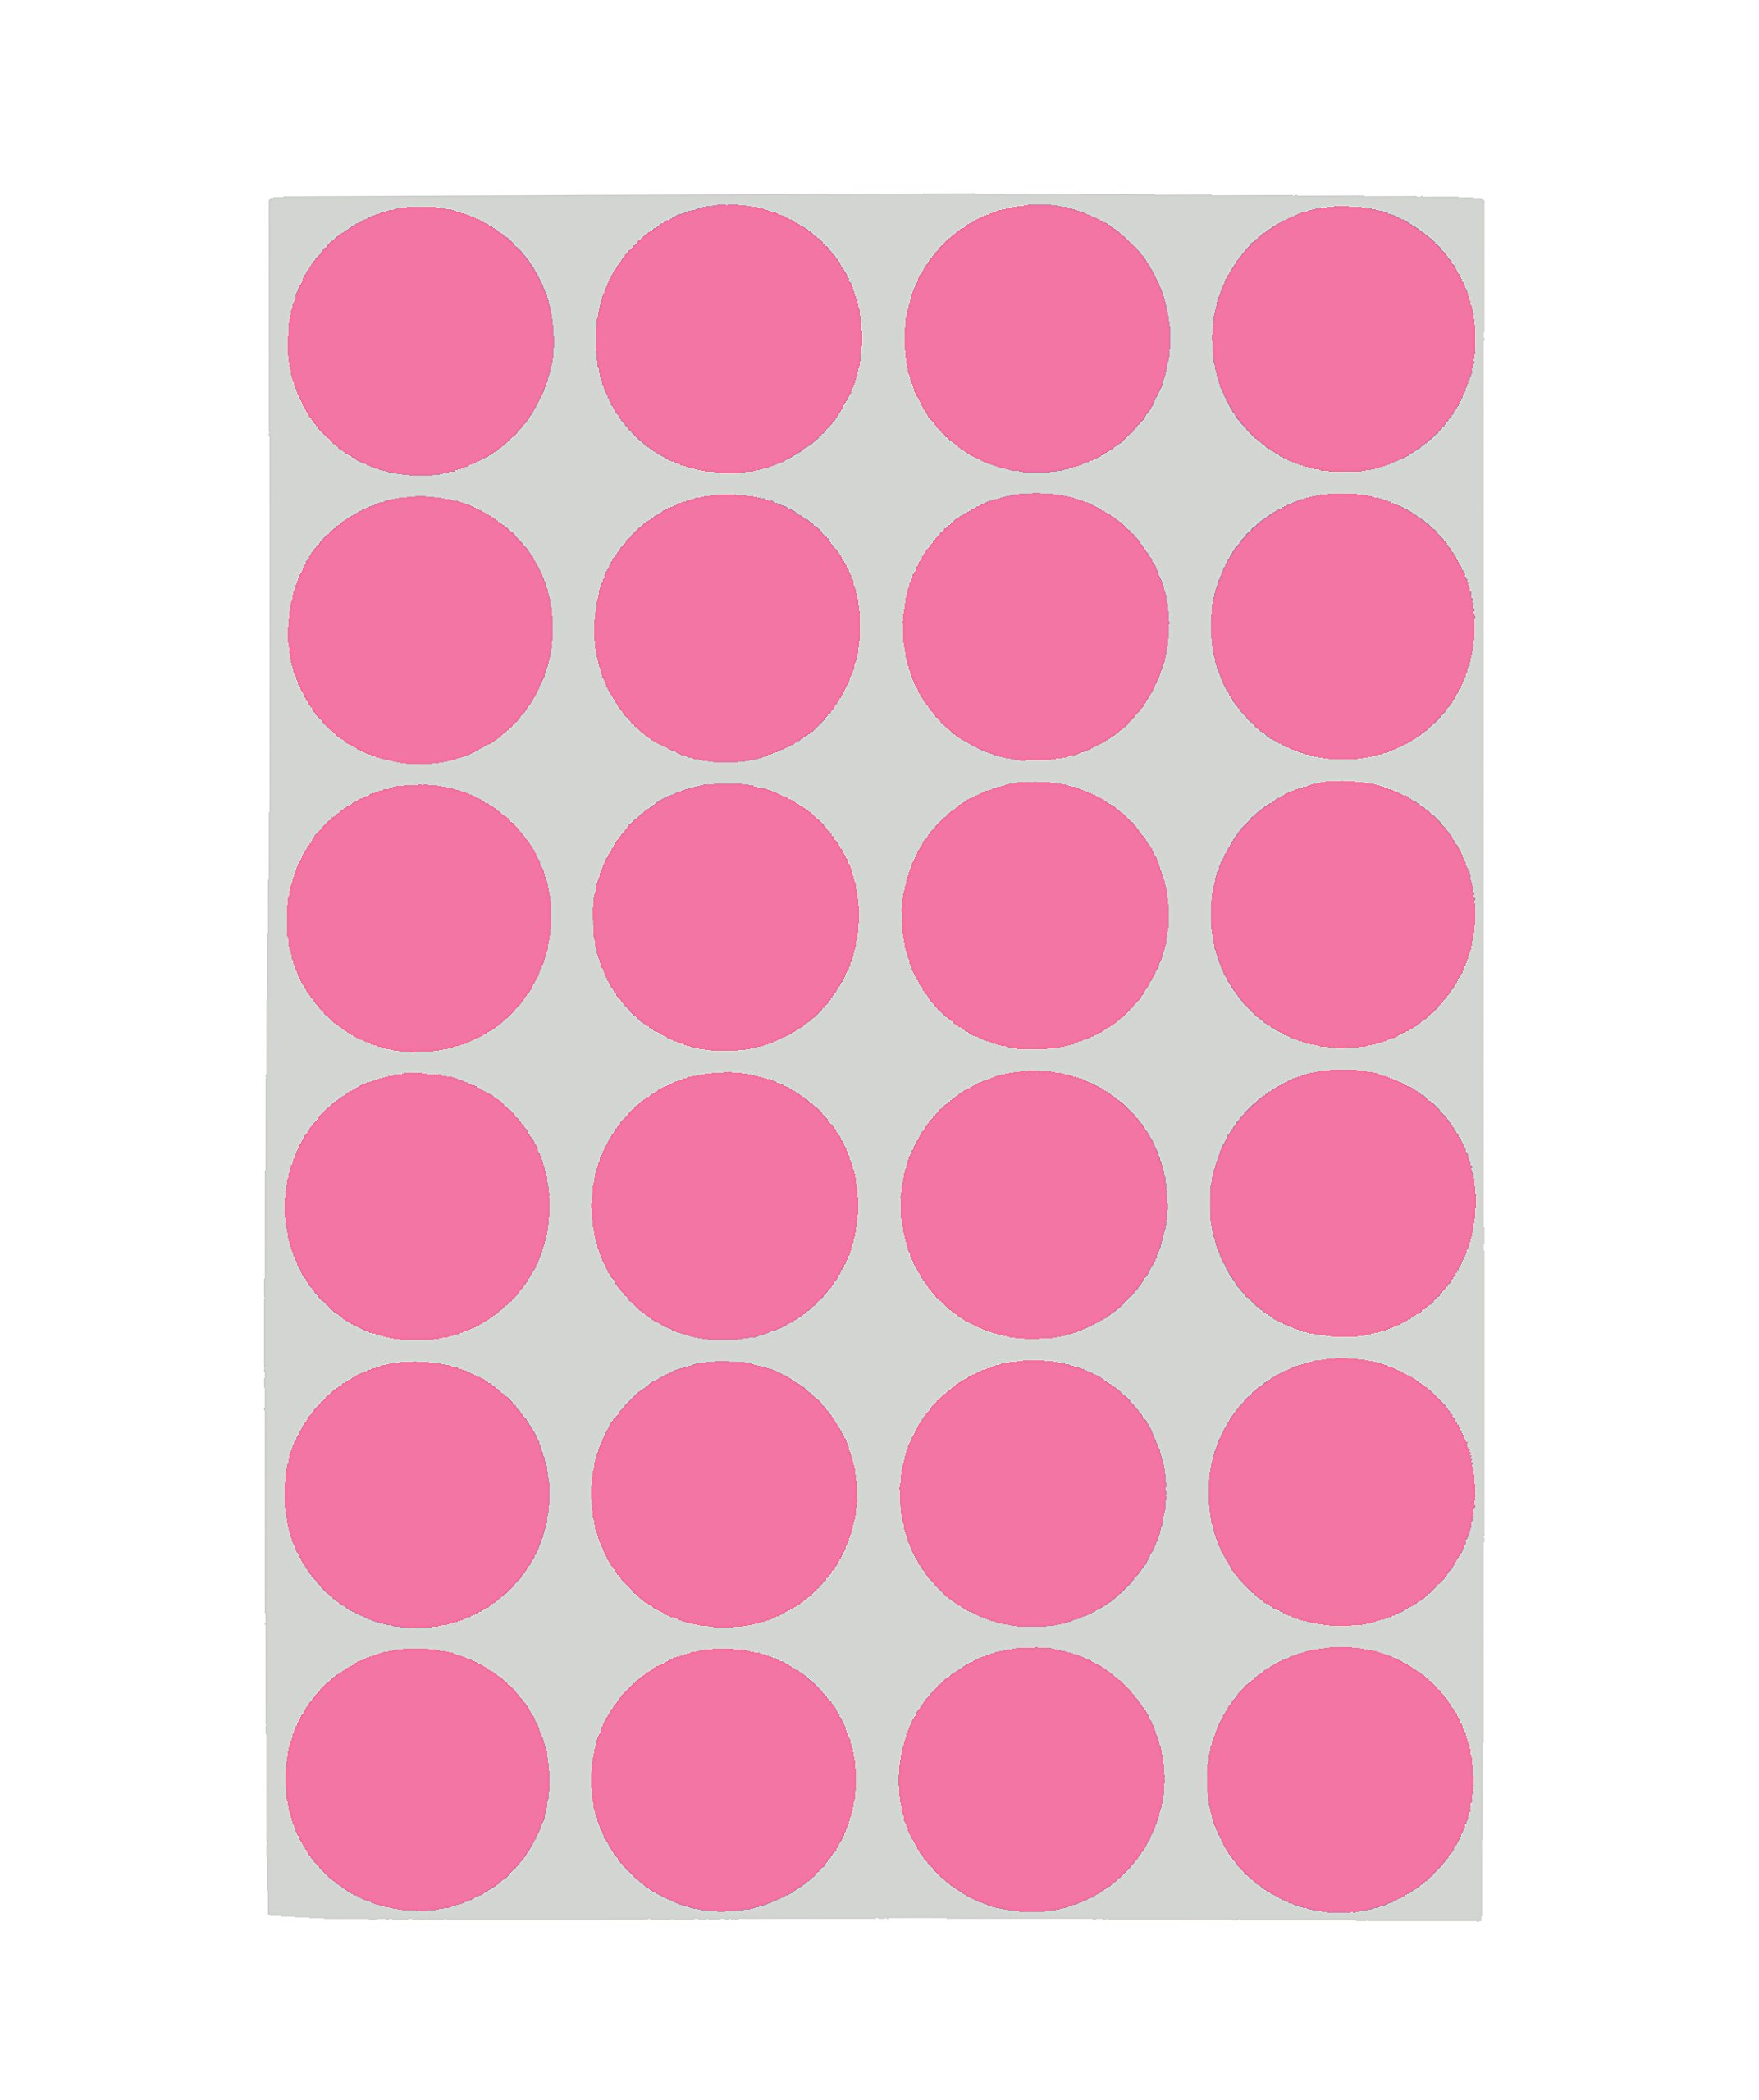 ChromaLabel 3/4 inch Removable Color-Code Dot Labels on Sheets | 1,008/Pack (Rose)